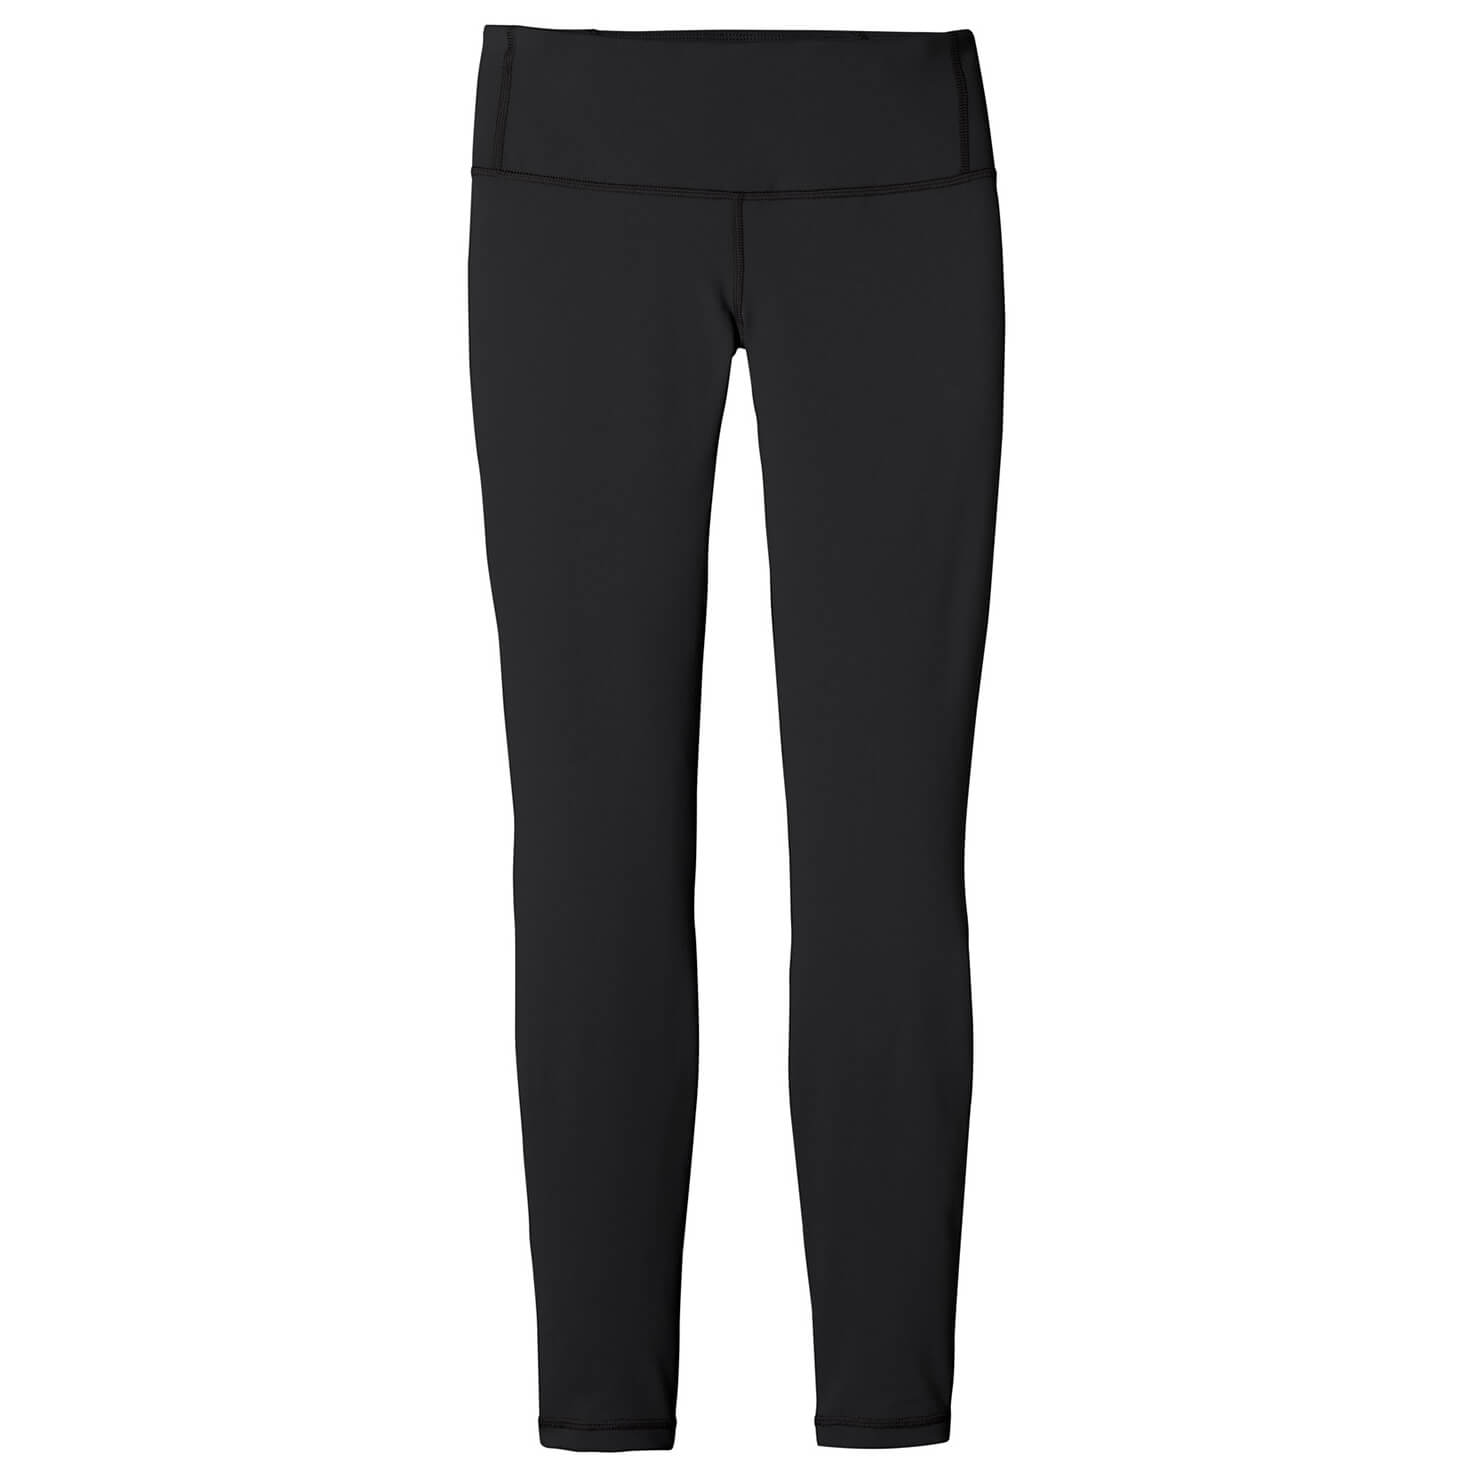 Patagonia Centered Tights - Yoga Pants Women's